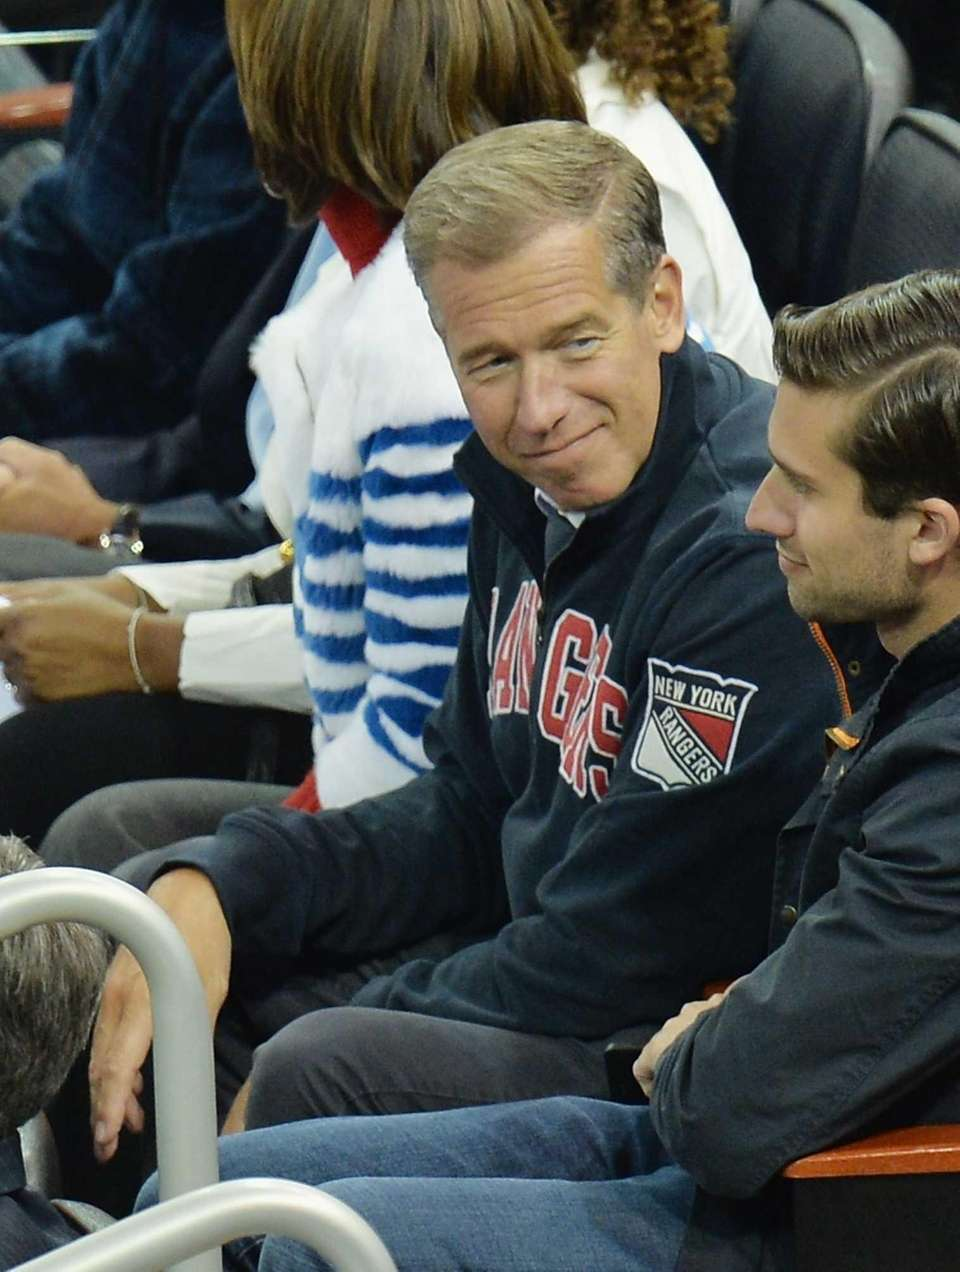 NBC anchor Brian Williams attends Game 3 of